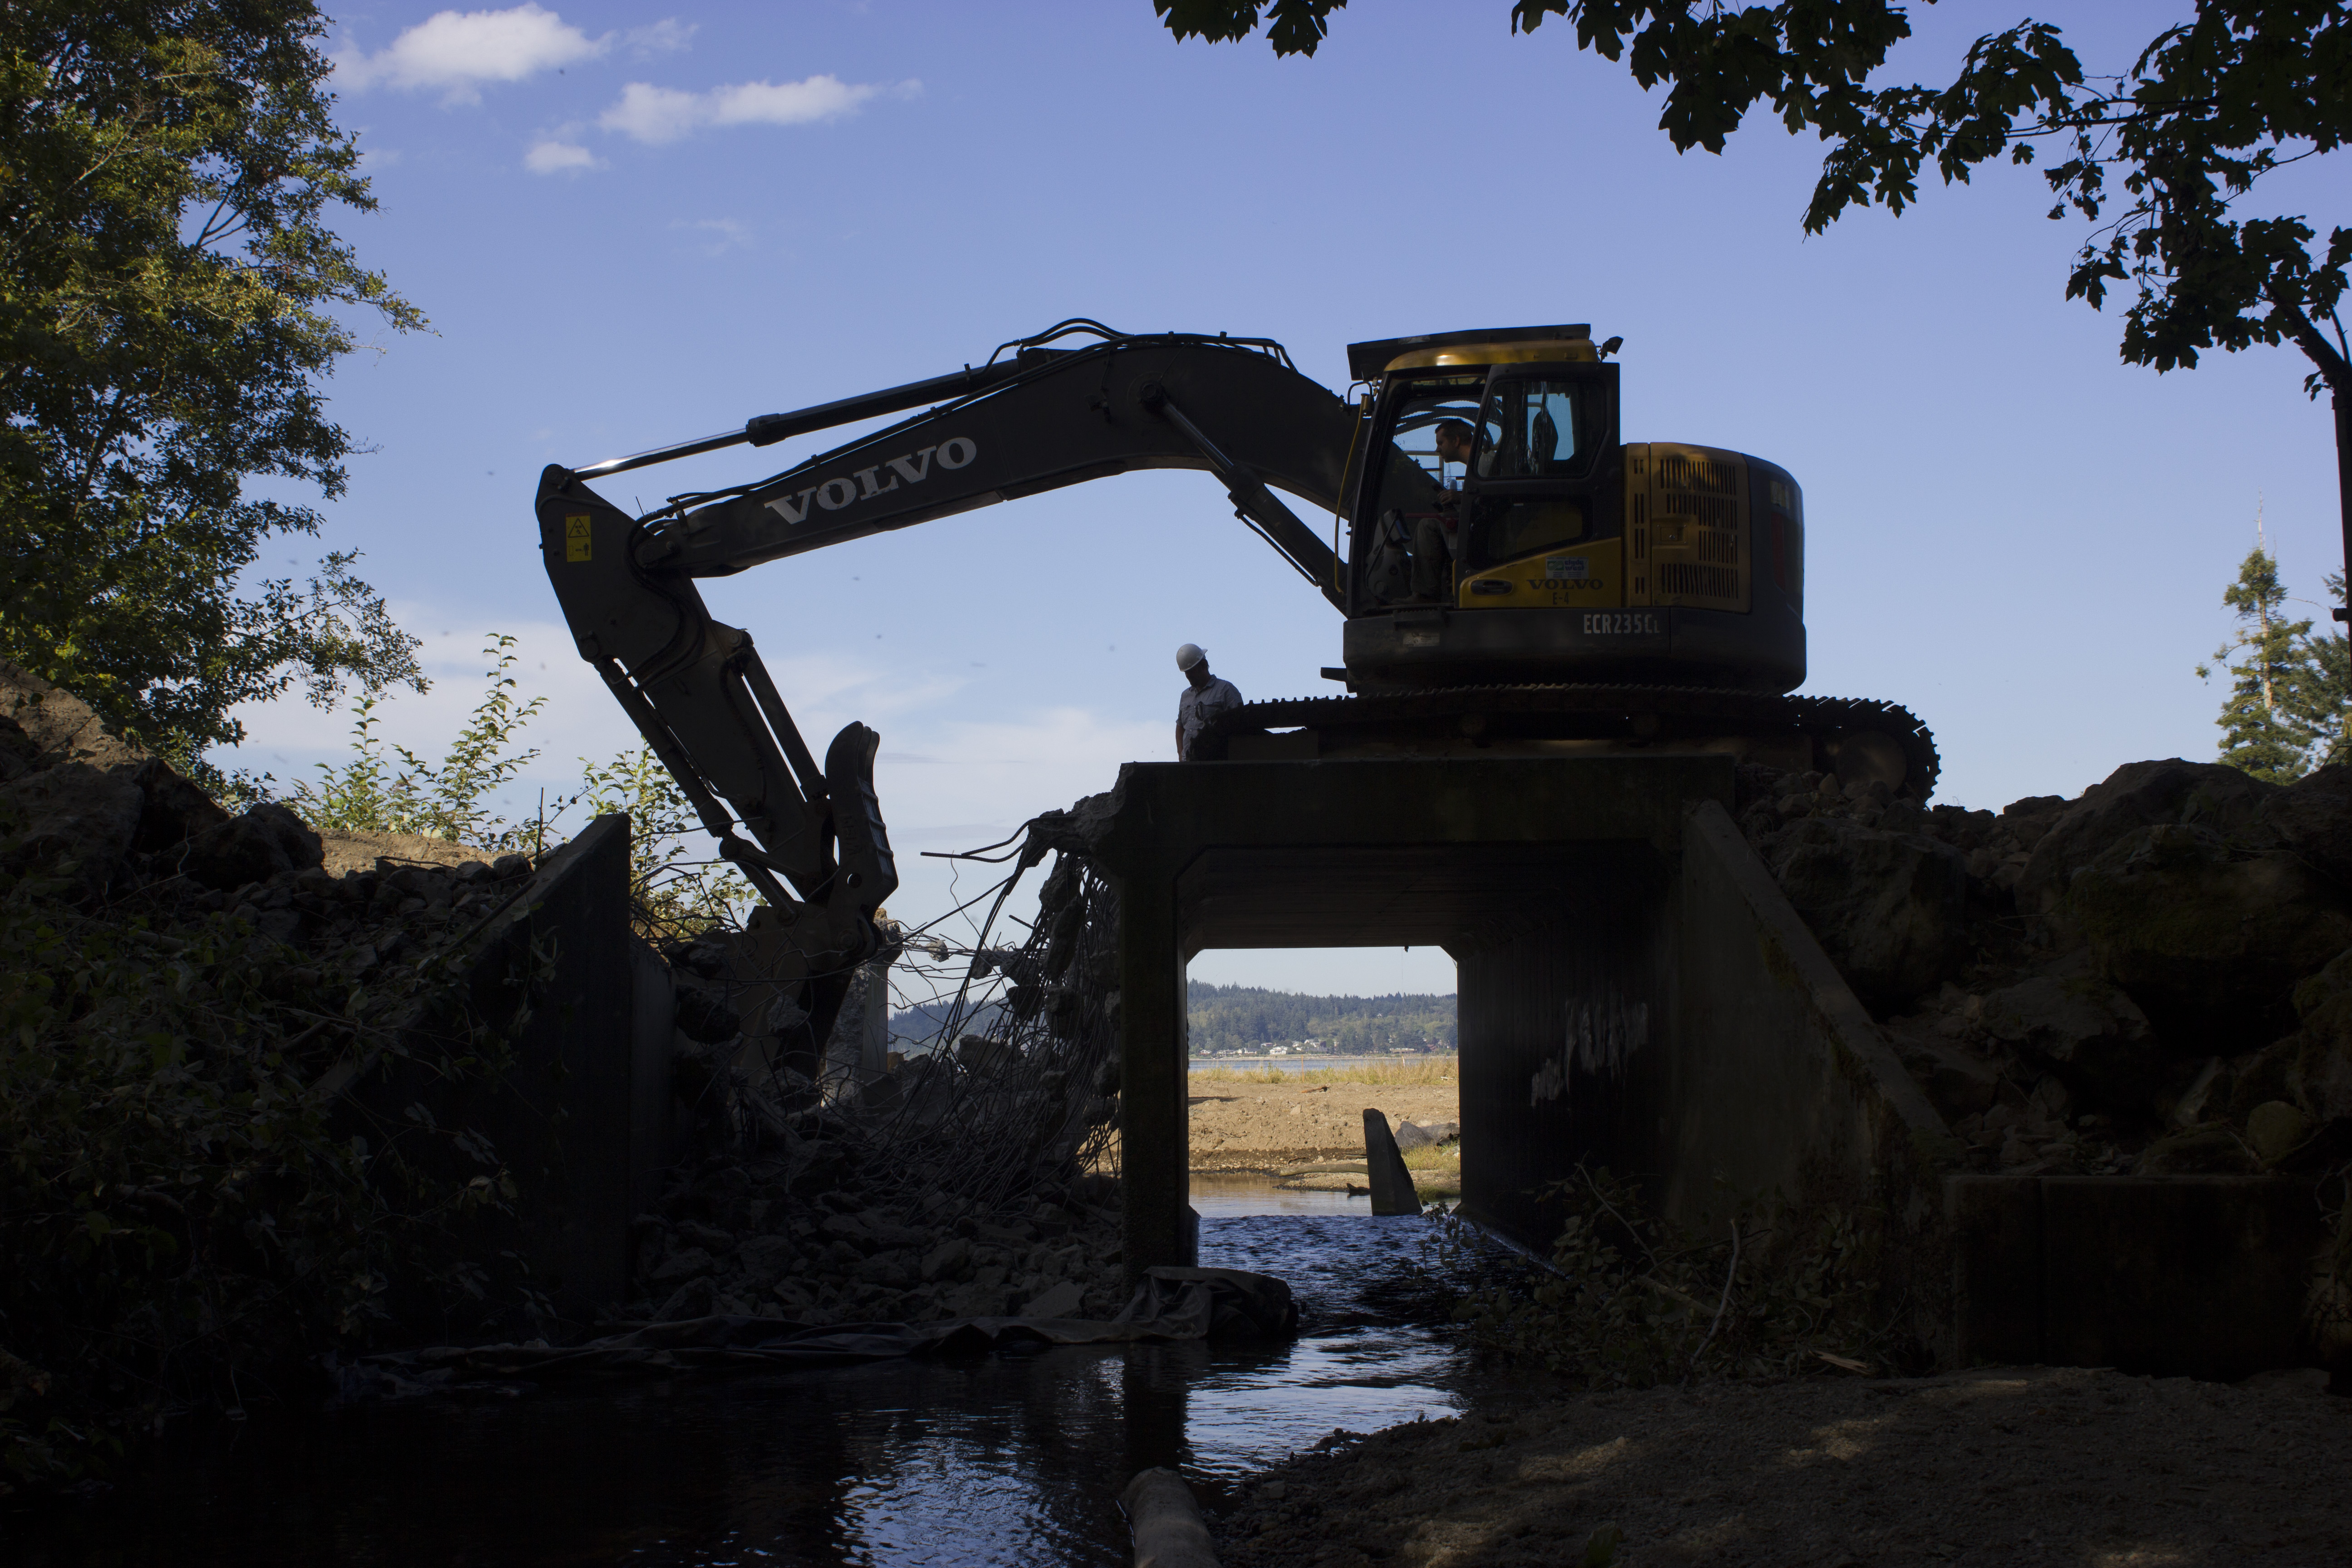 Being Frank: State Should Drop Culvert Case Appeal